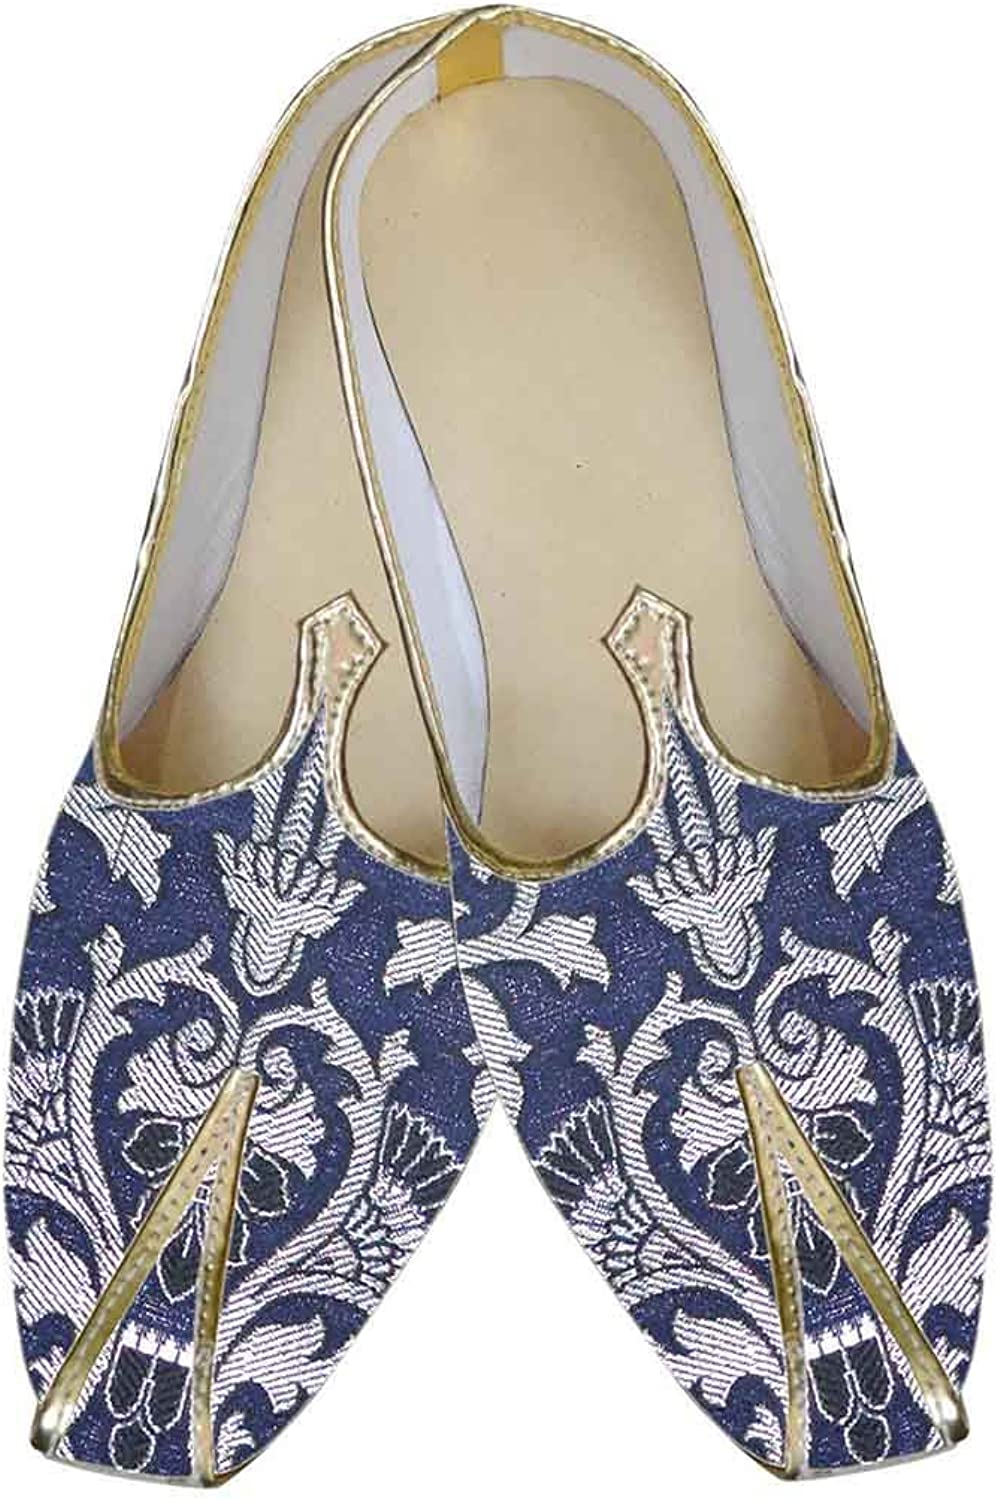 INMONARCH Mens Navy bluee Indian shoes Floral Design MJ0135